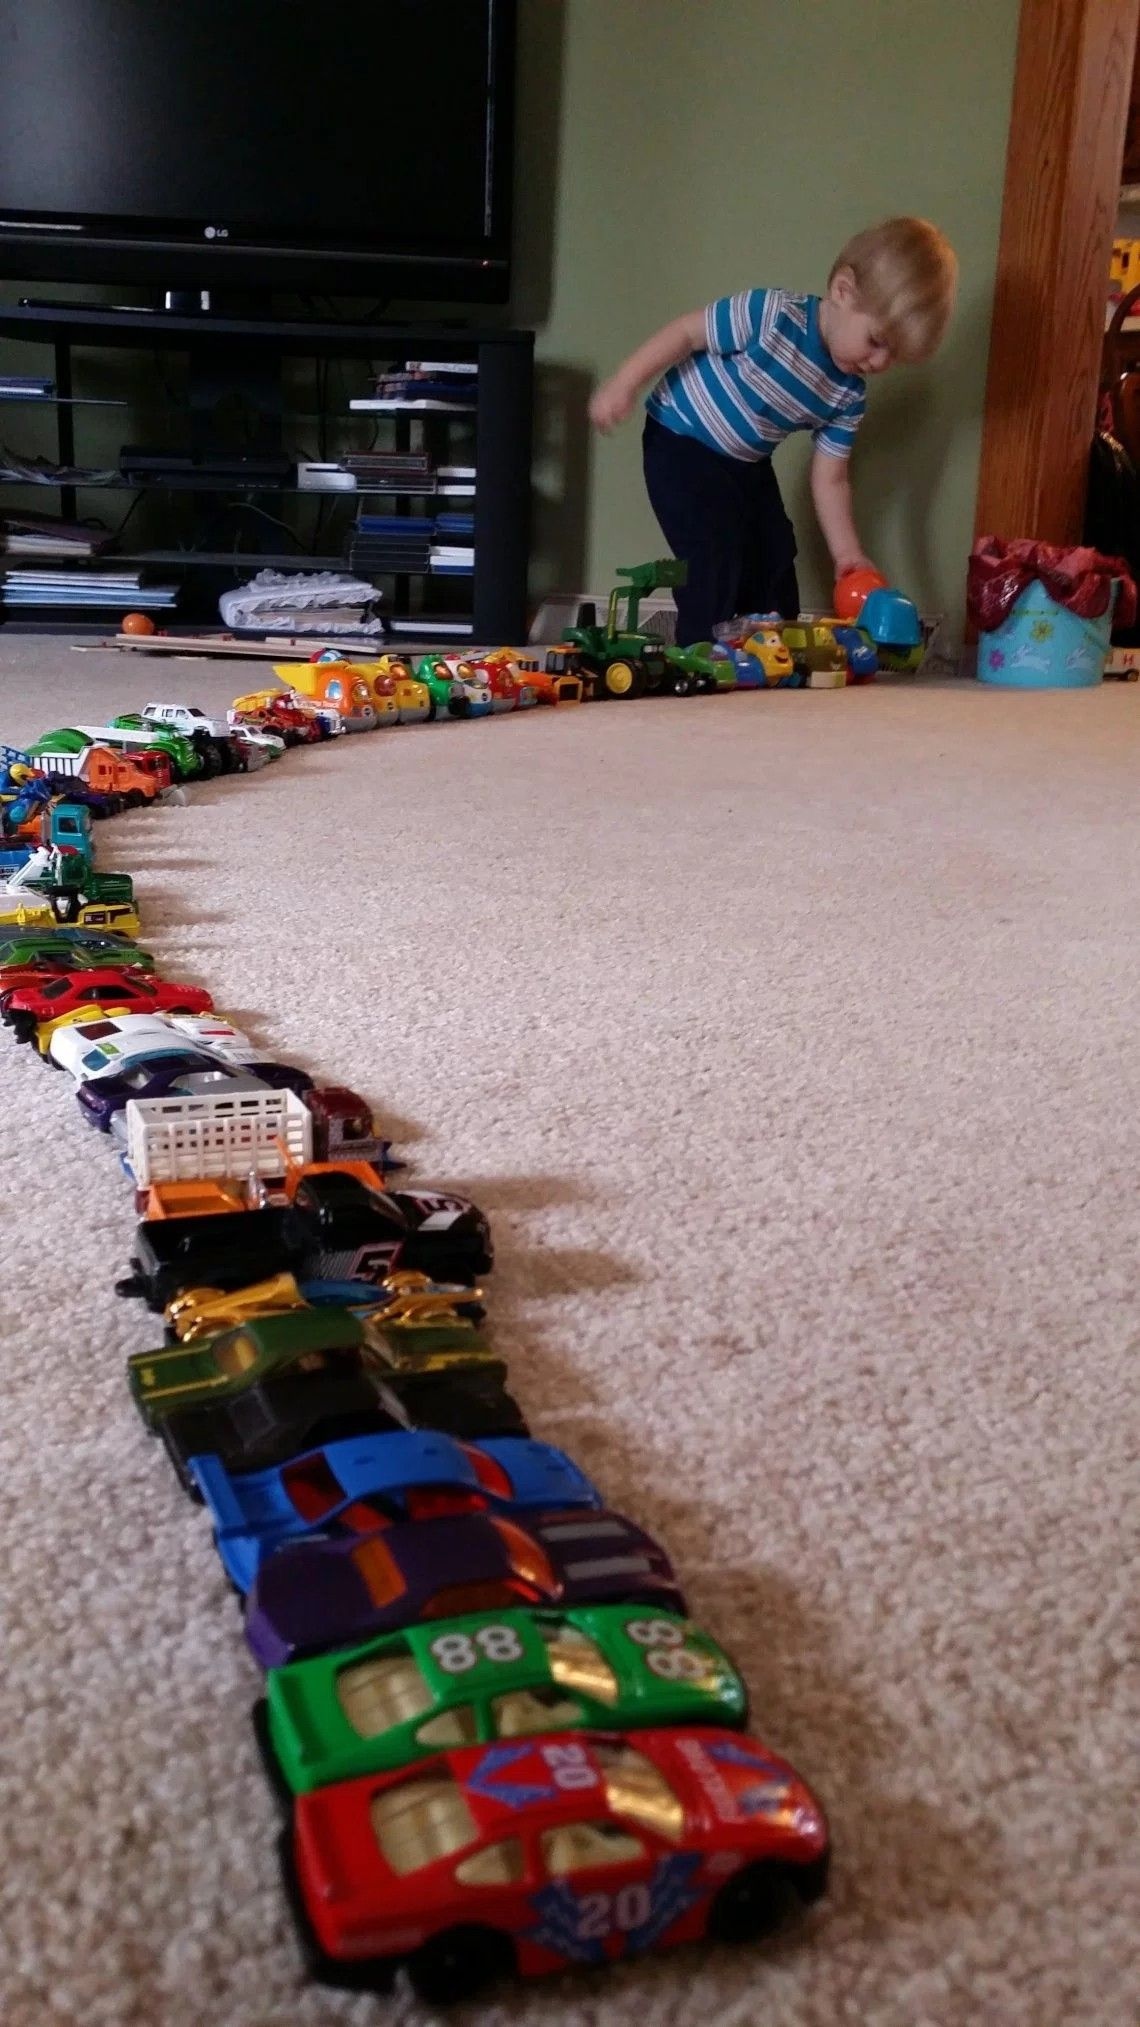 Lining up toys developmentally appropriate play or sign of Autism